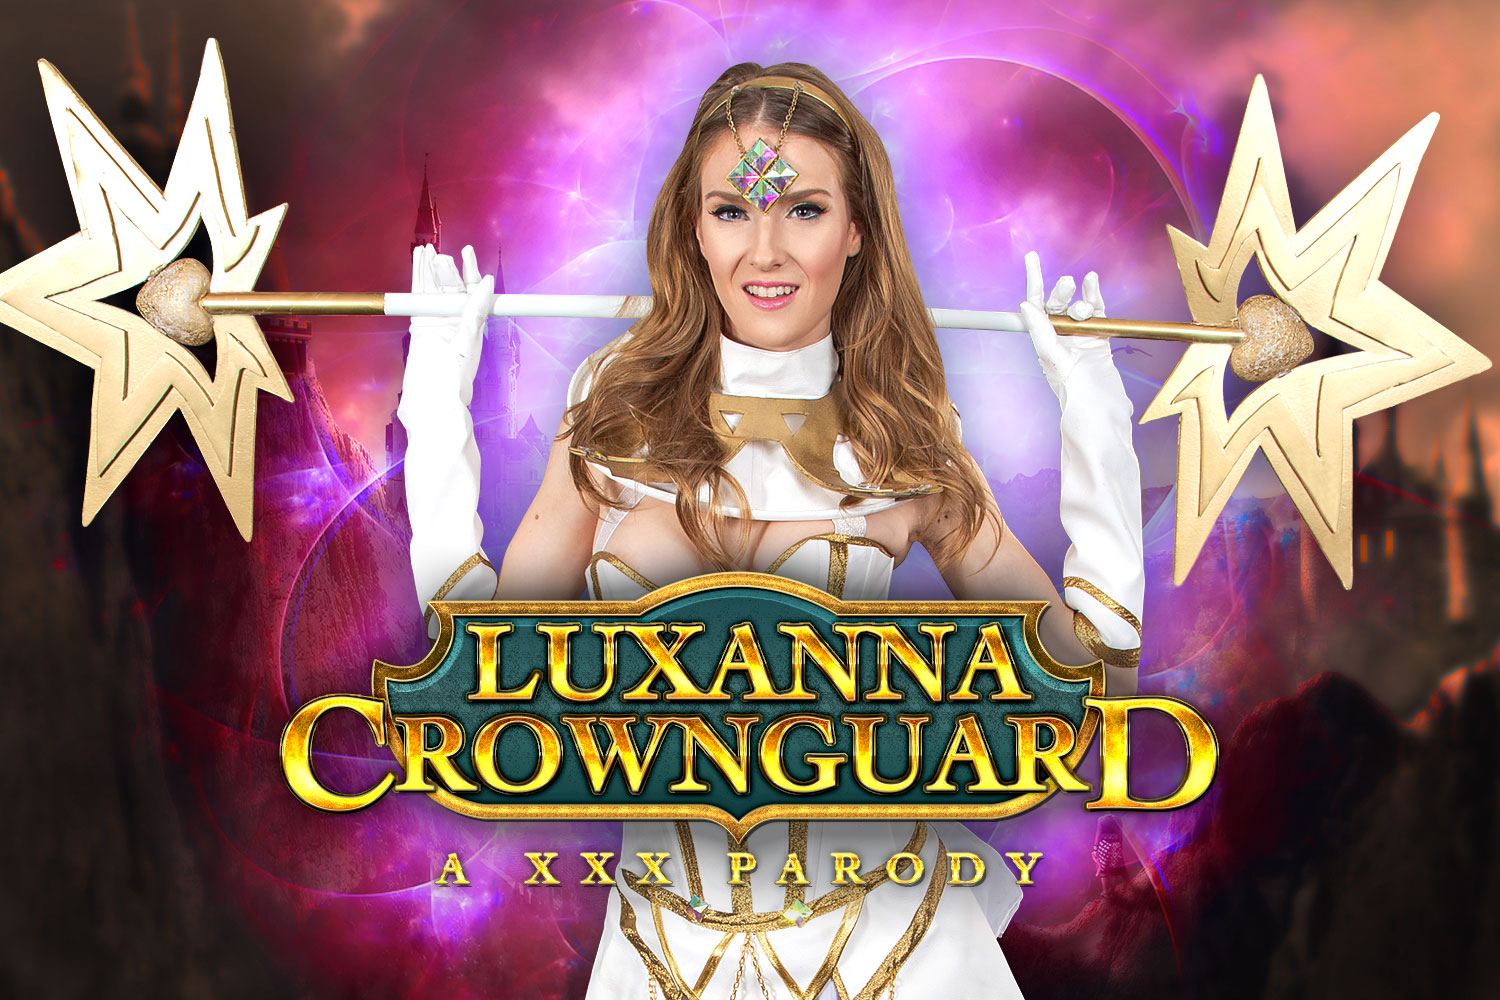 Luxana Crownguard A XXX Parody VR Porn Video